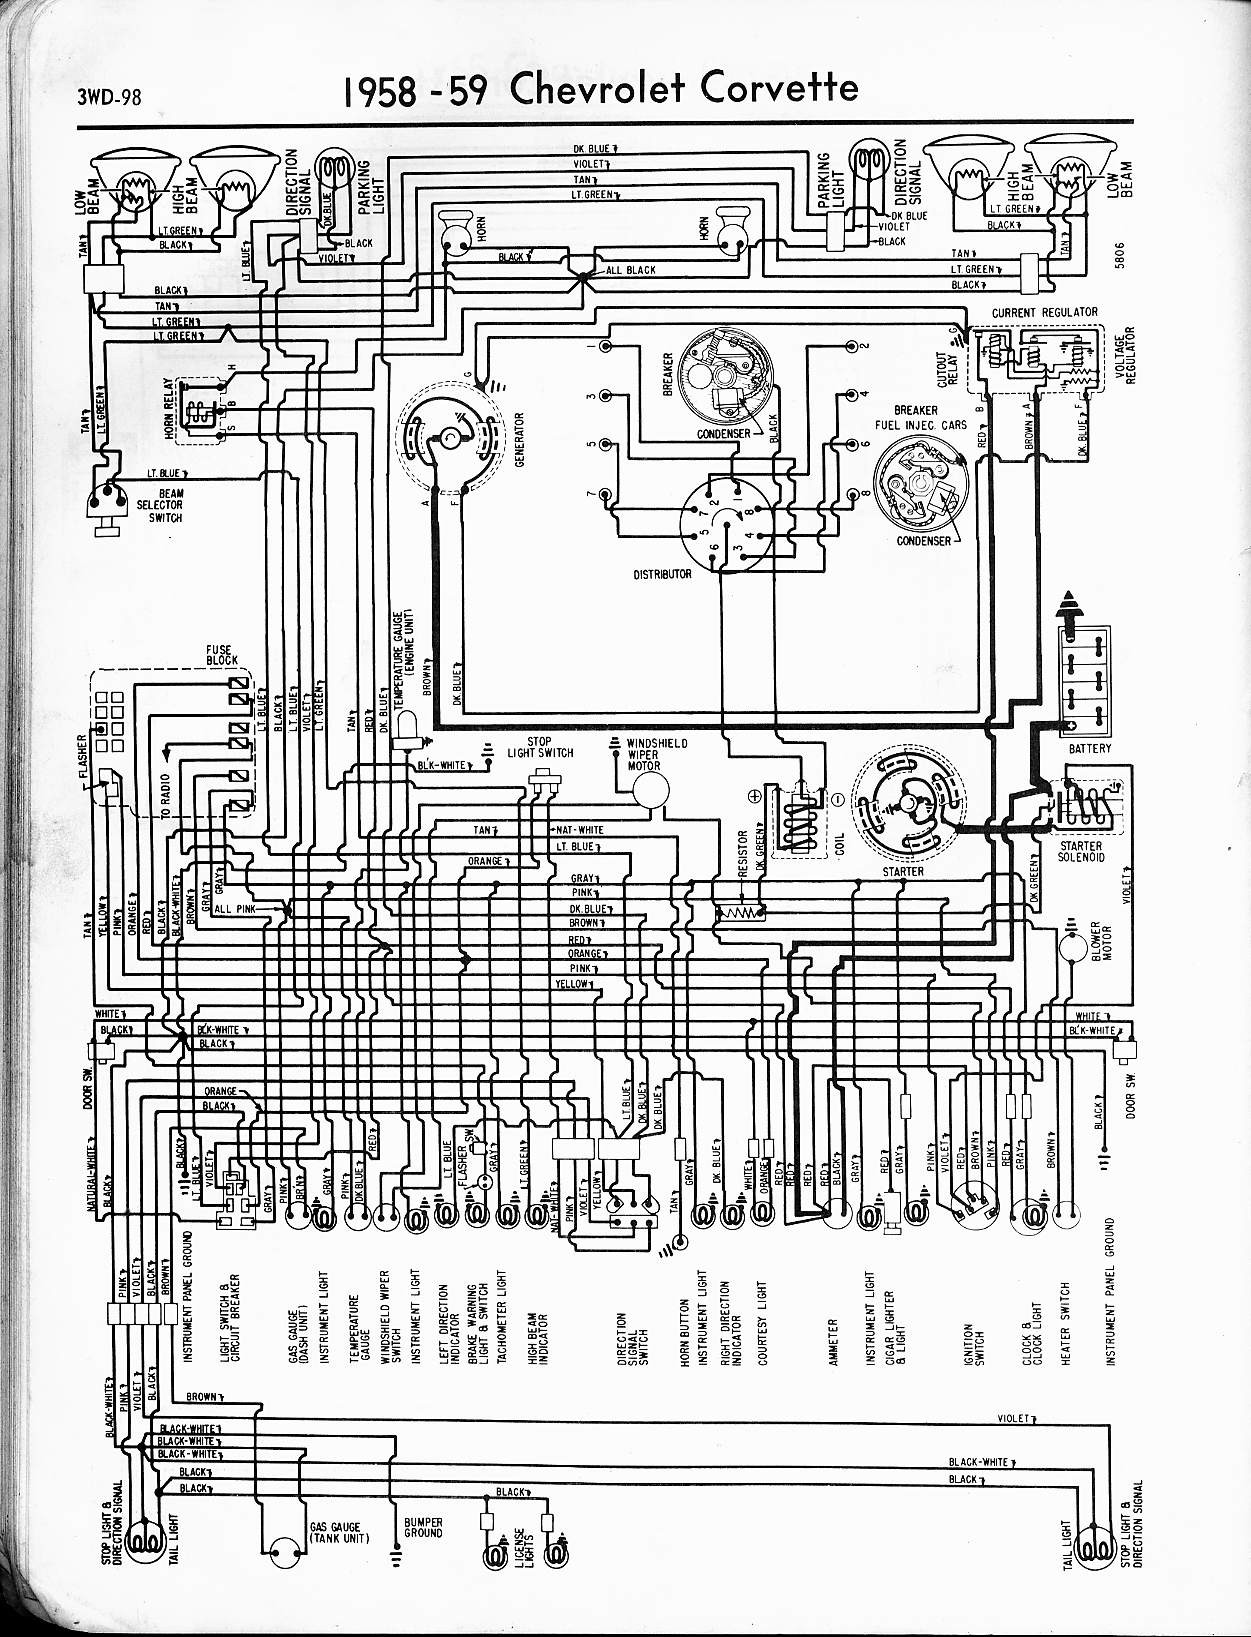 1976 Chevy Truck Wiring Diagram 57 65 Chevy Wiring Diagrams Of 1976 Chevy Truck Wiring Diagram